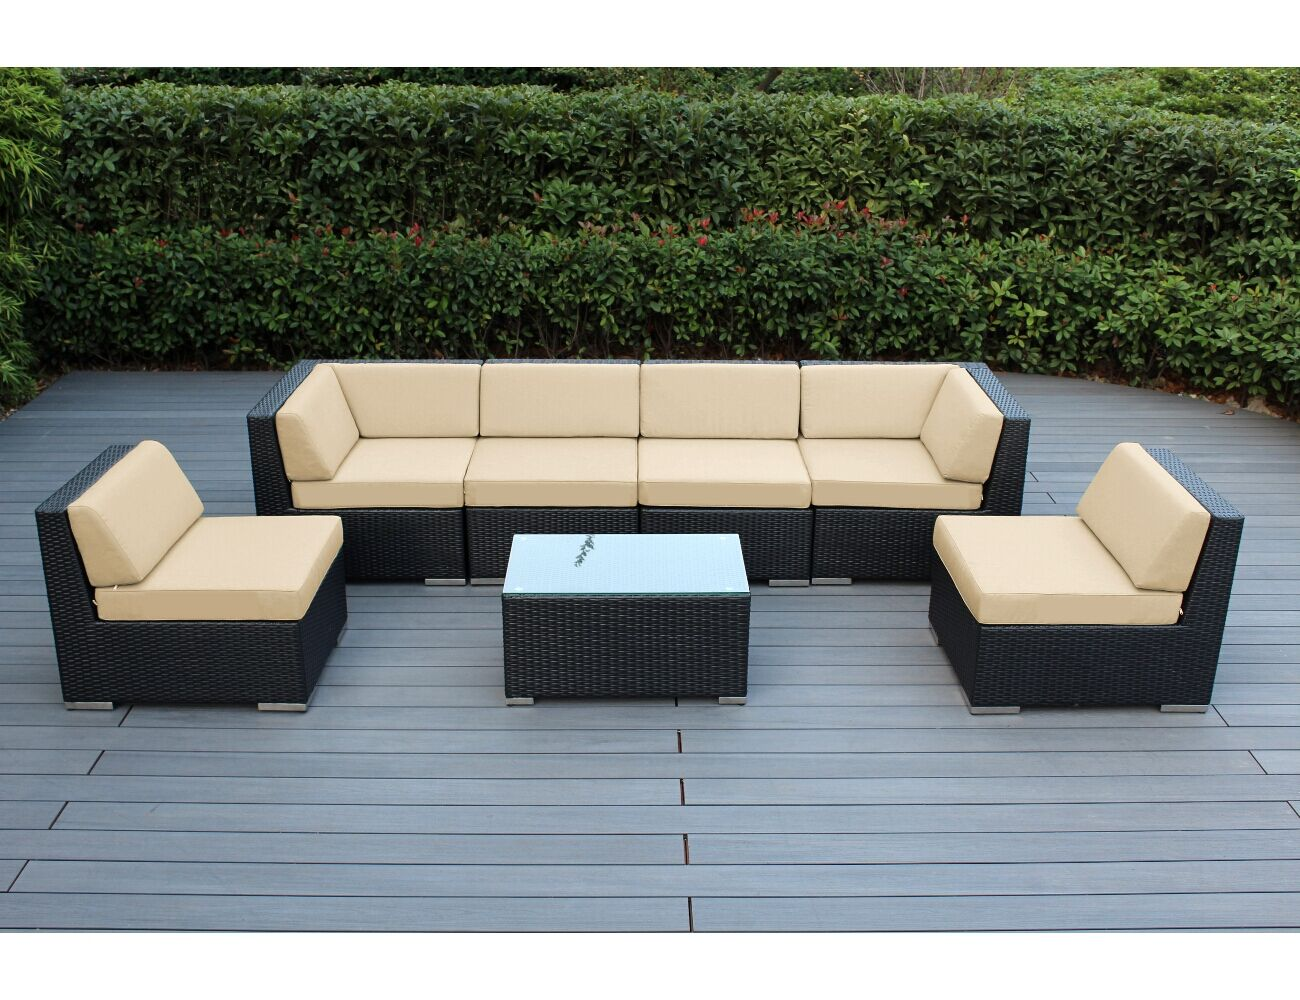 7 Piece Sectional Seating Group with Cushions Cushion Color: Sunbrella Antique Beige, Frame Finish: Black